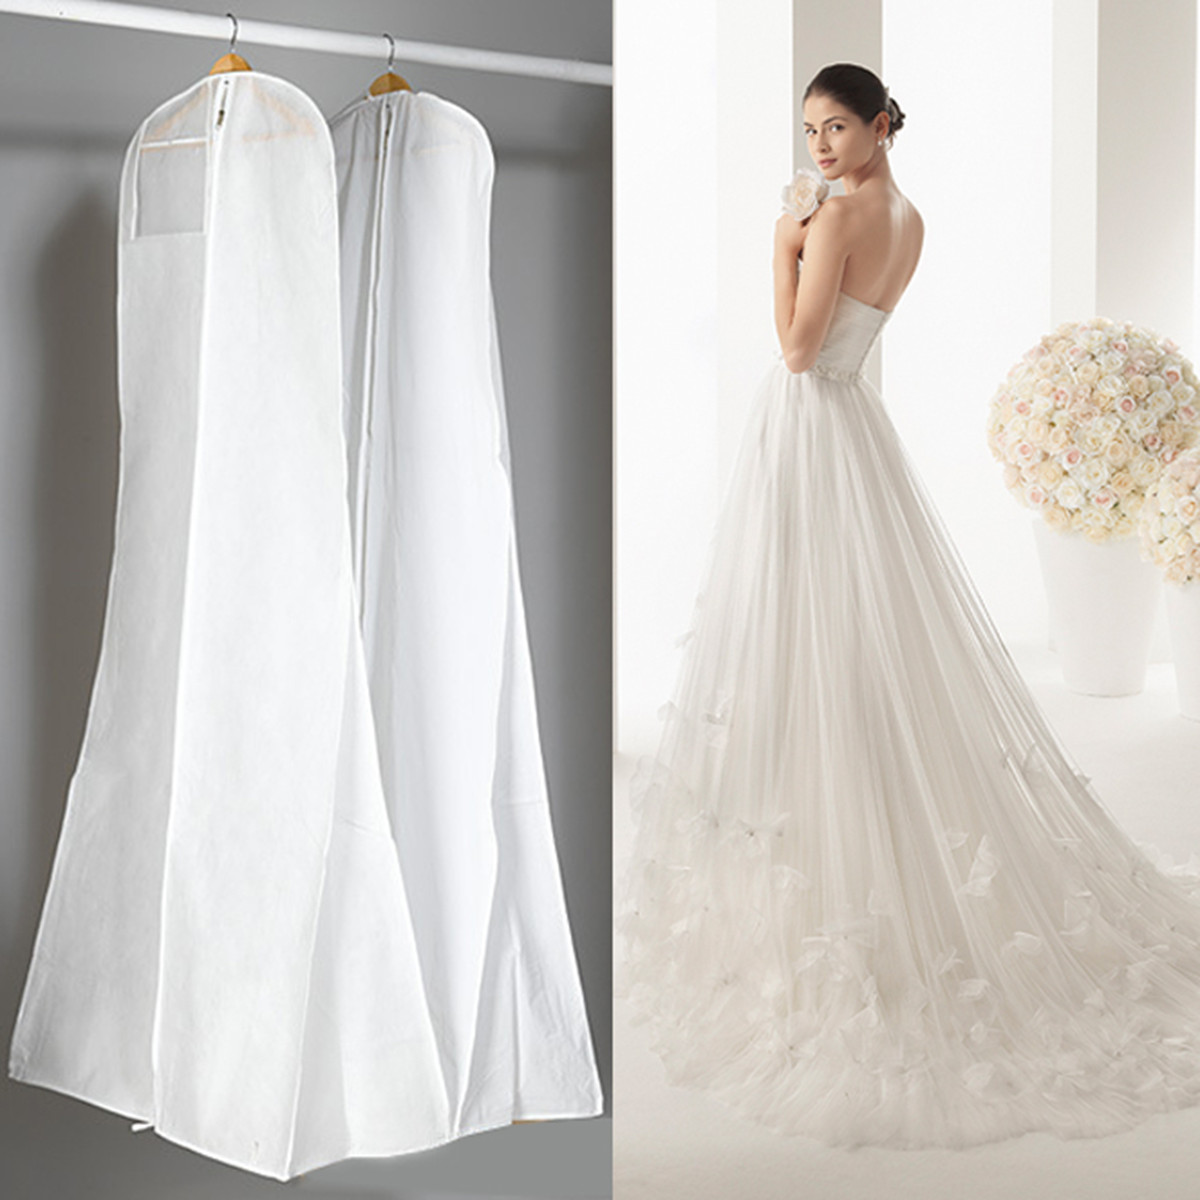 Meigar Breathable Dress Cover Bag Non-wowen Anti-dust Wedding Dress Gown Garment Bag Storage Protector Cover with Clear Zipped Pocket